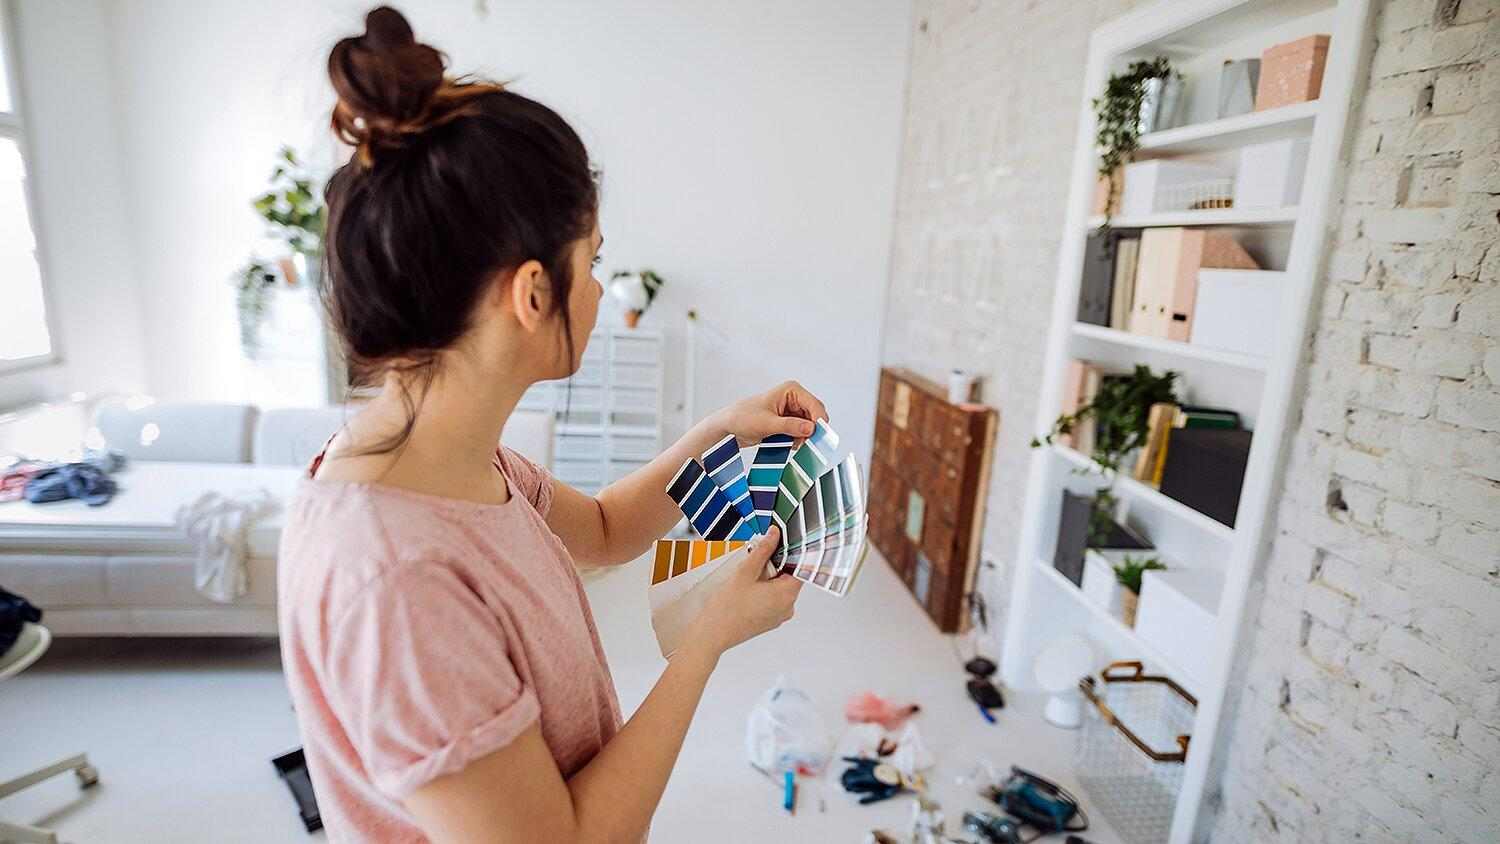 Over 80 Percent of Millennials Have Done a DIY Home Improvement Project During Pandemic Shutdown